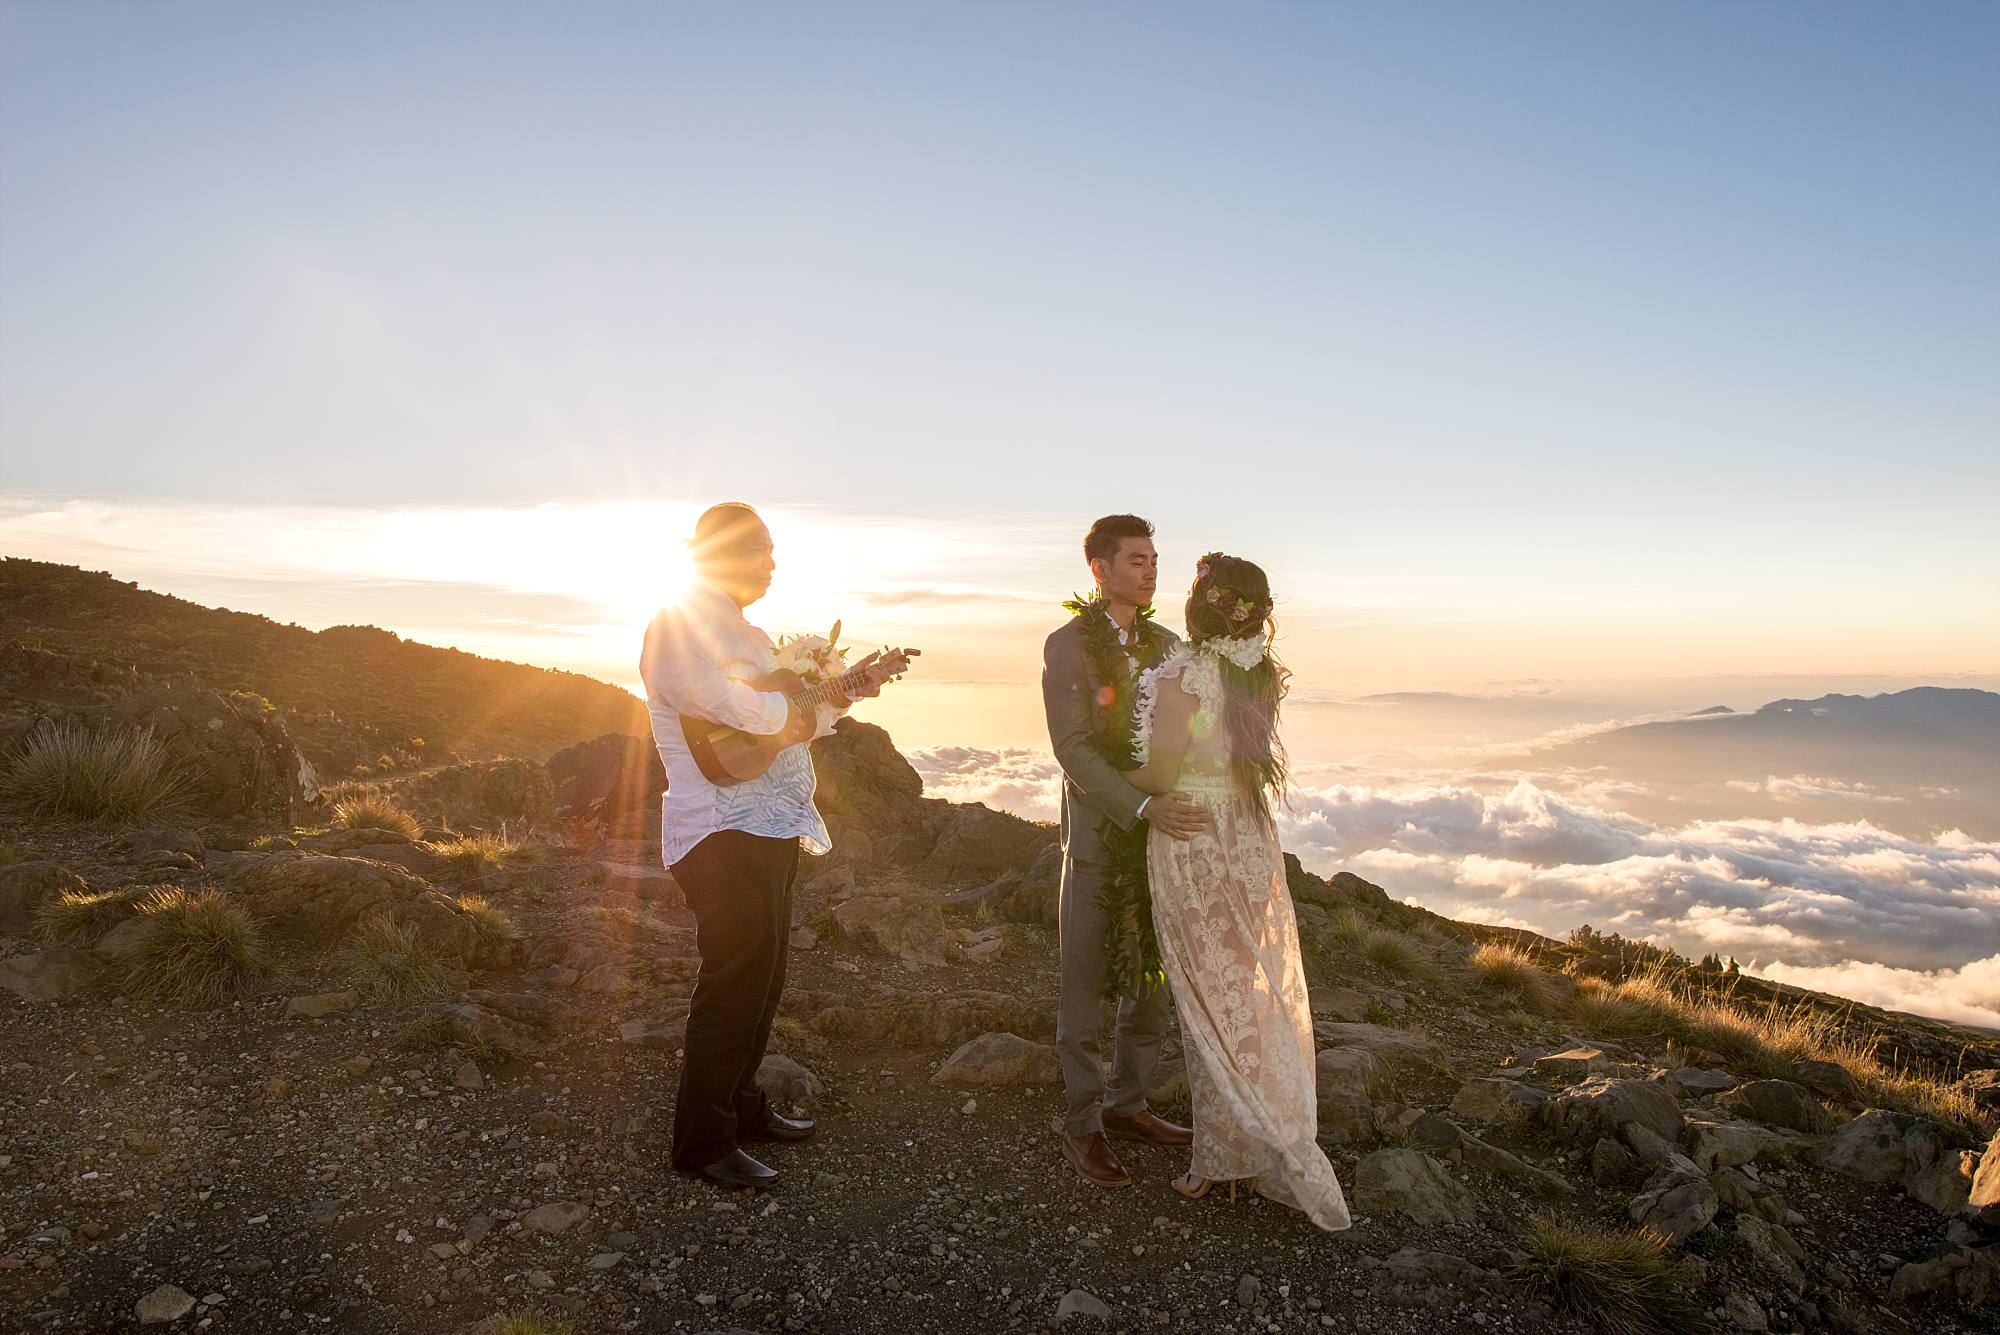 wedding officiant laying ukulele while bride and groom hold on to one another